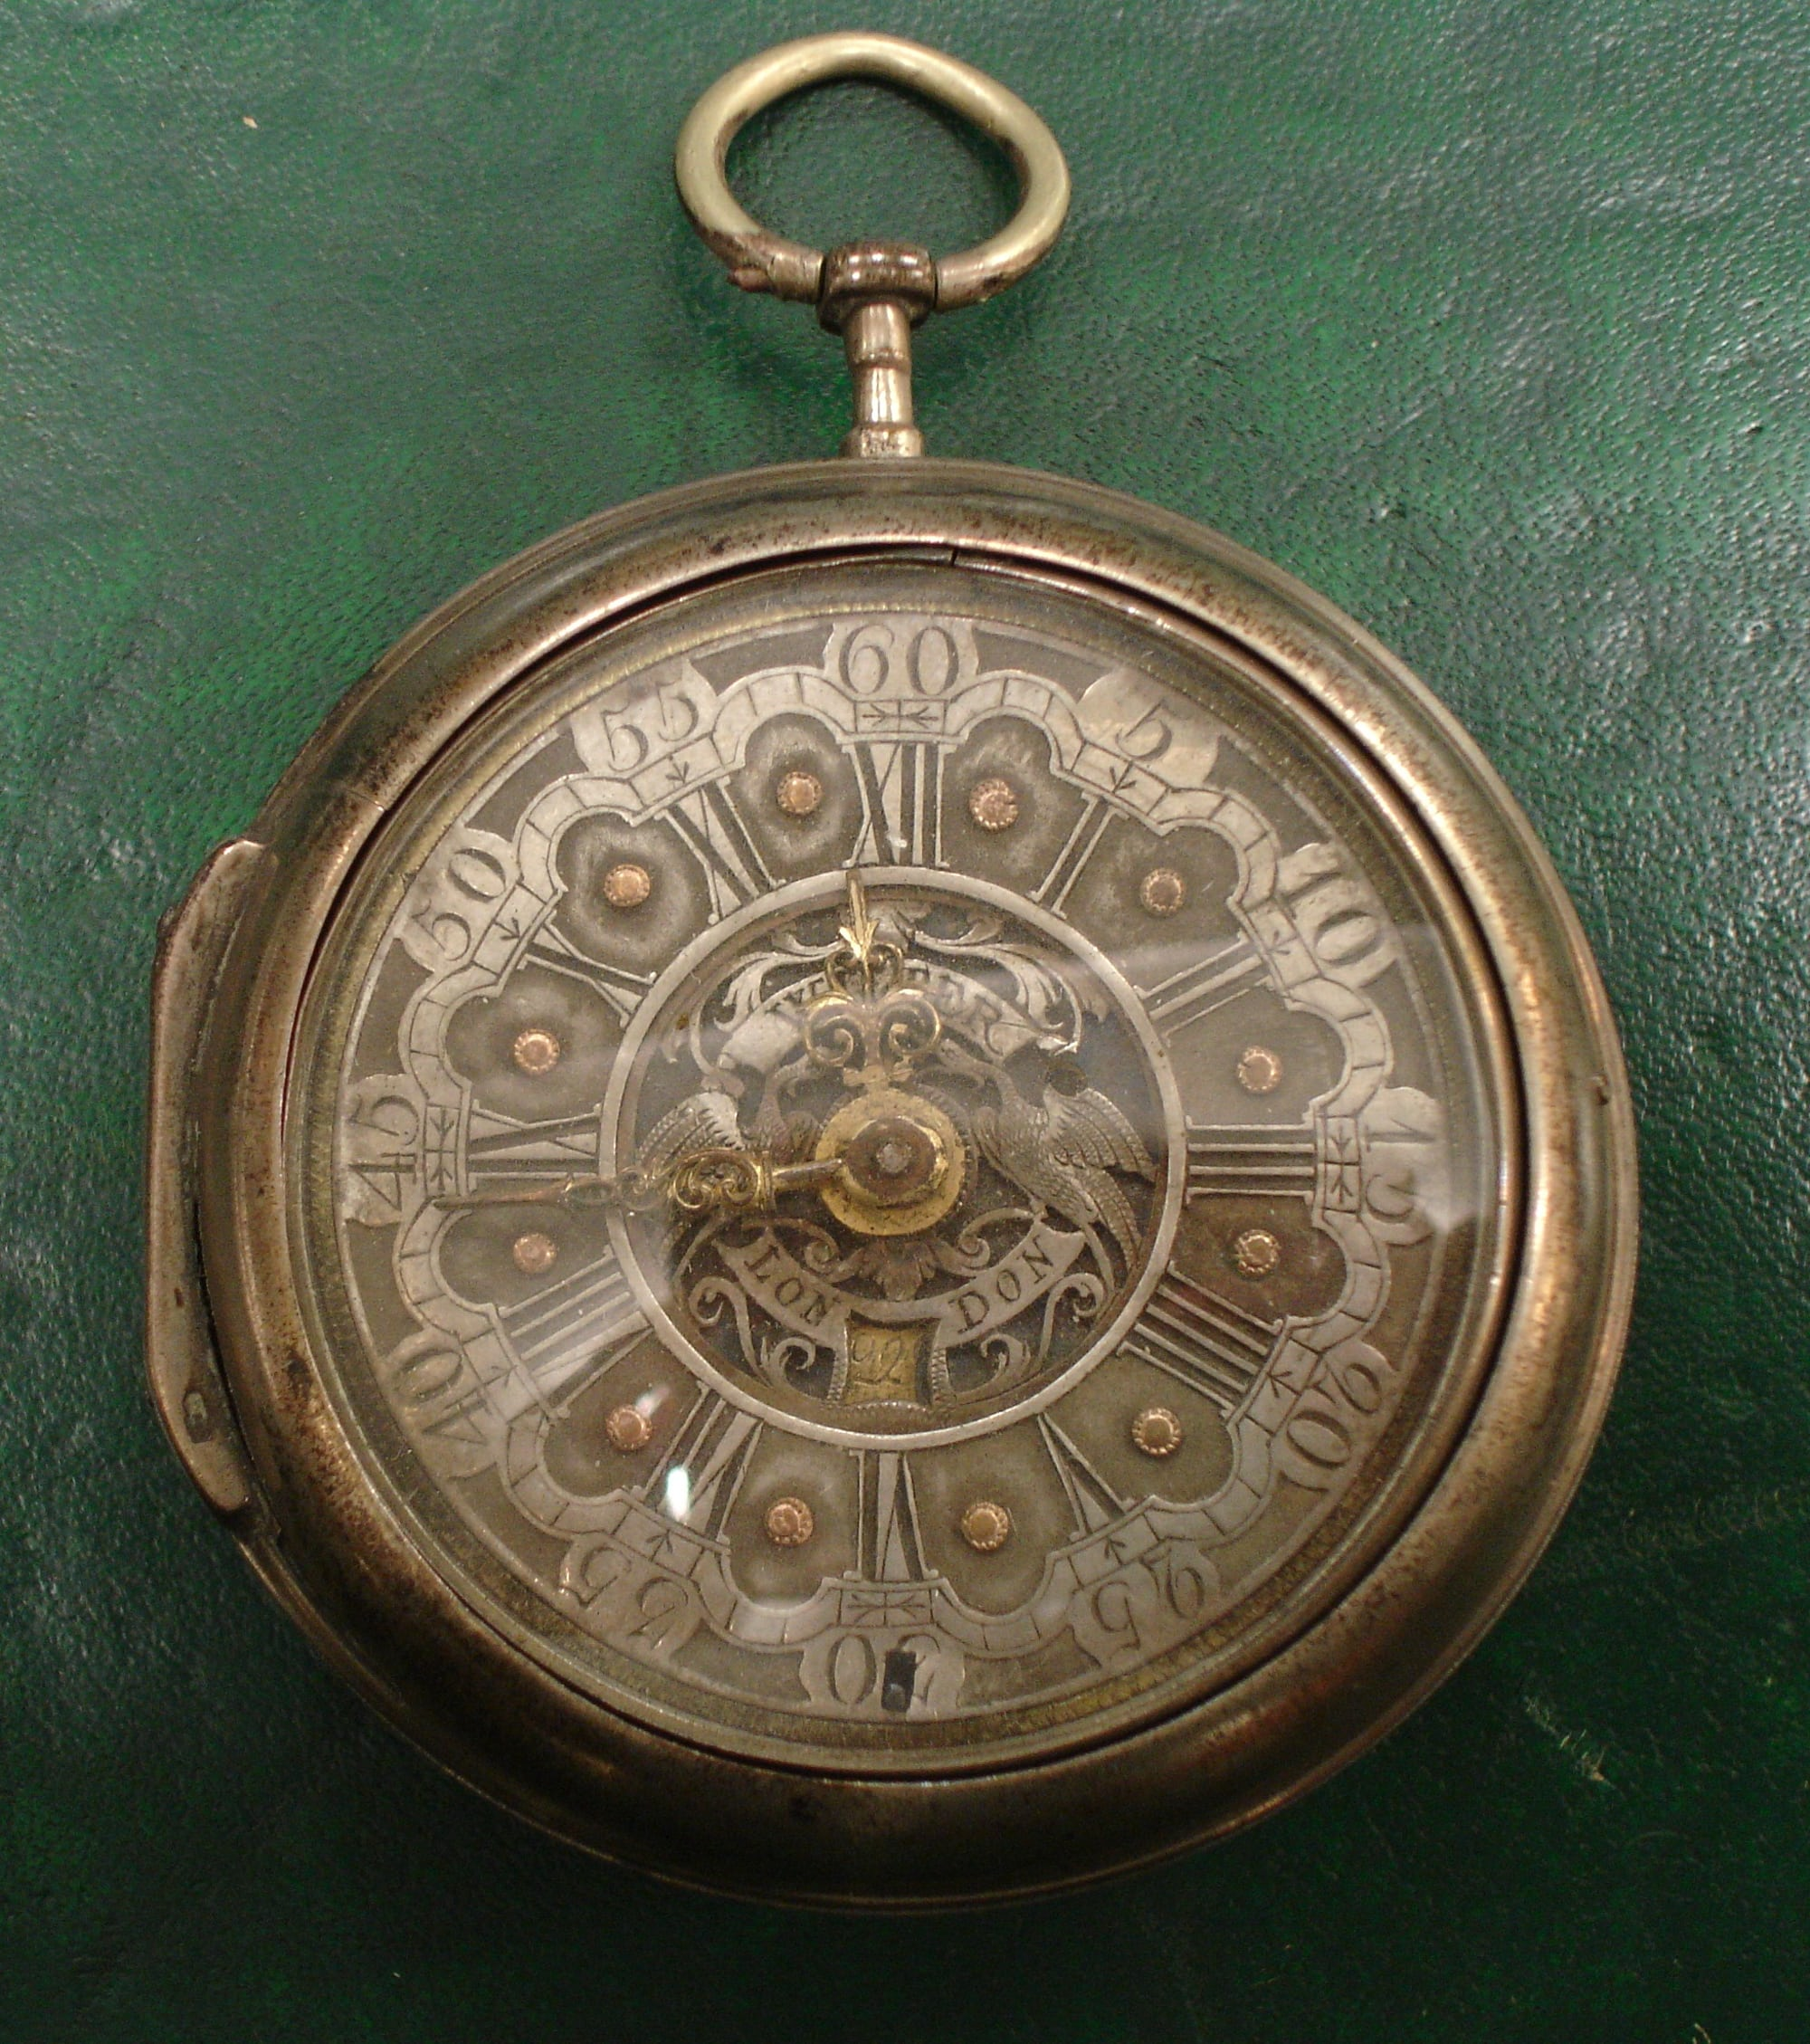 A watch claiming to be by John Wilter, London Happenings: Dr. Rebecca Struthers To Lecture At The Horological Society Of New York Happenings: Dr. Rebecca Struthers To Lecture At The Horological Society Of New York A watch claiming to be by John Wilter London